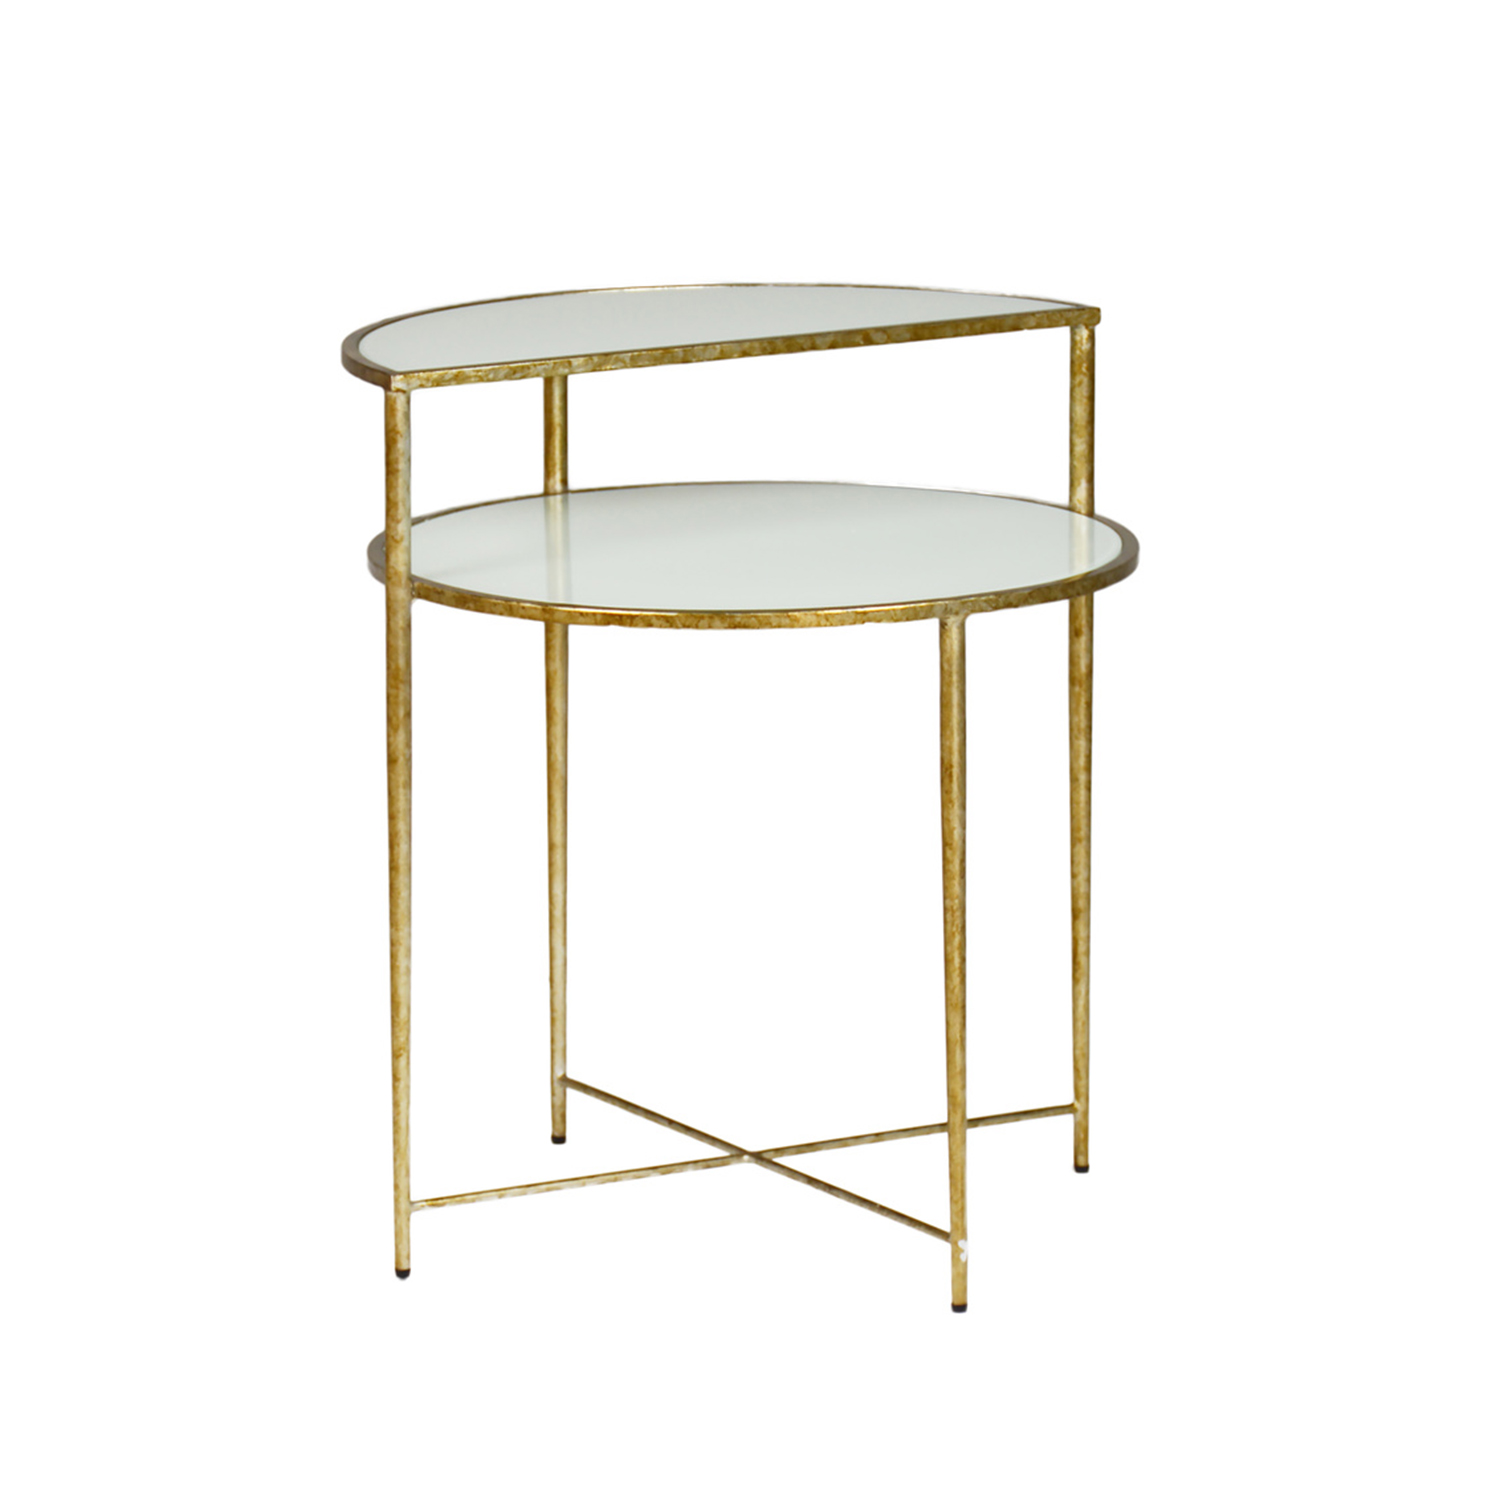 gabby home langdon white glass and champagne metal side table sch threshold accent marble nice end tables inch high west elm wood shelves set nautical chandelier light fixtures